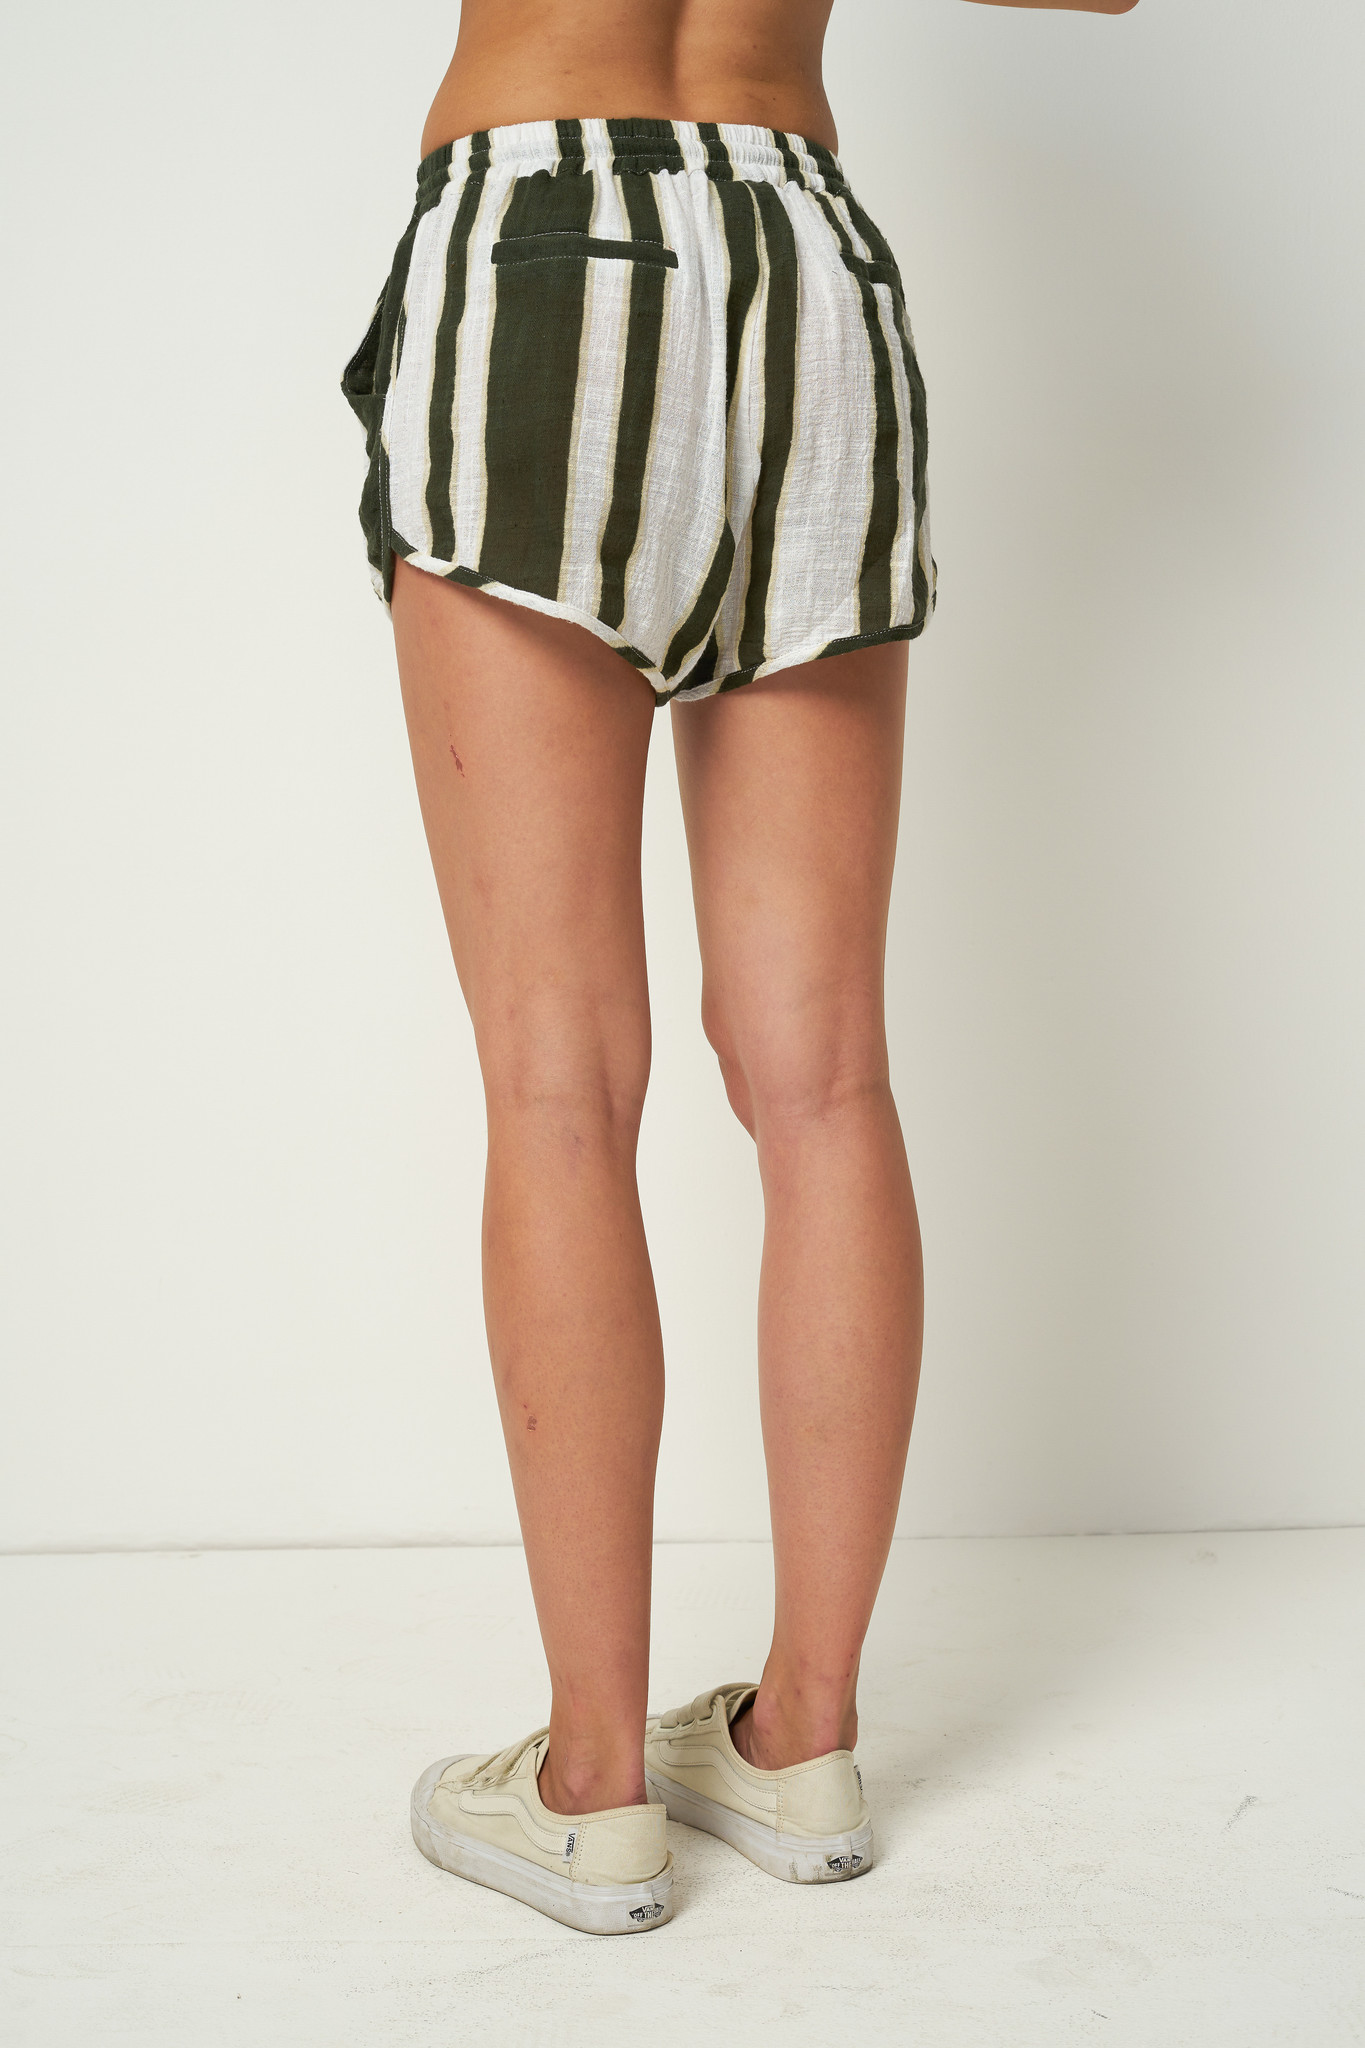 Rue Stiic Willa Shorts, Presley Stripe, Mustang Green